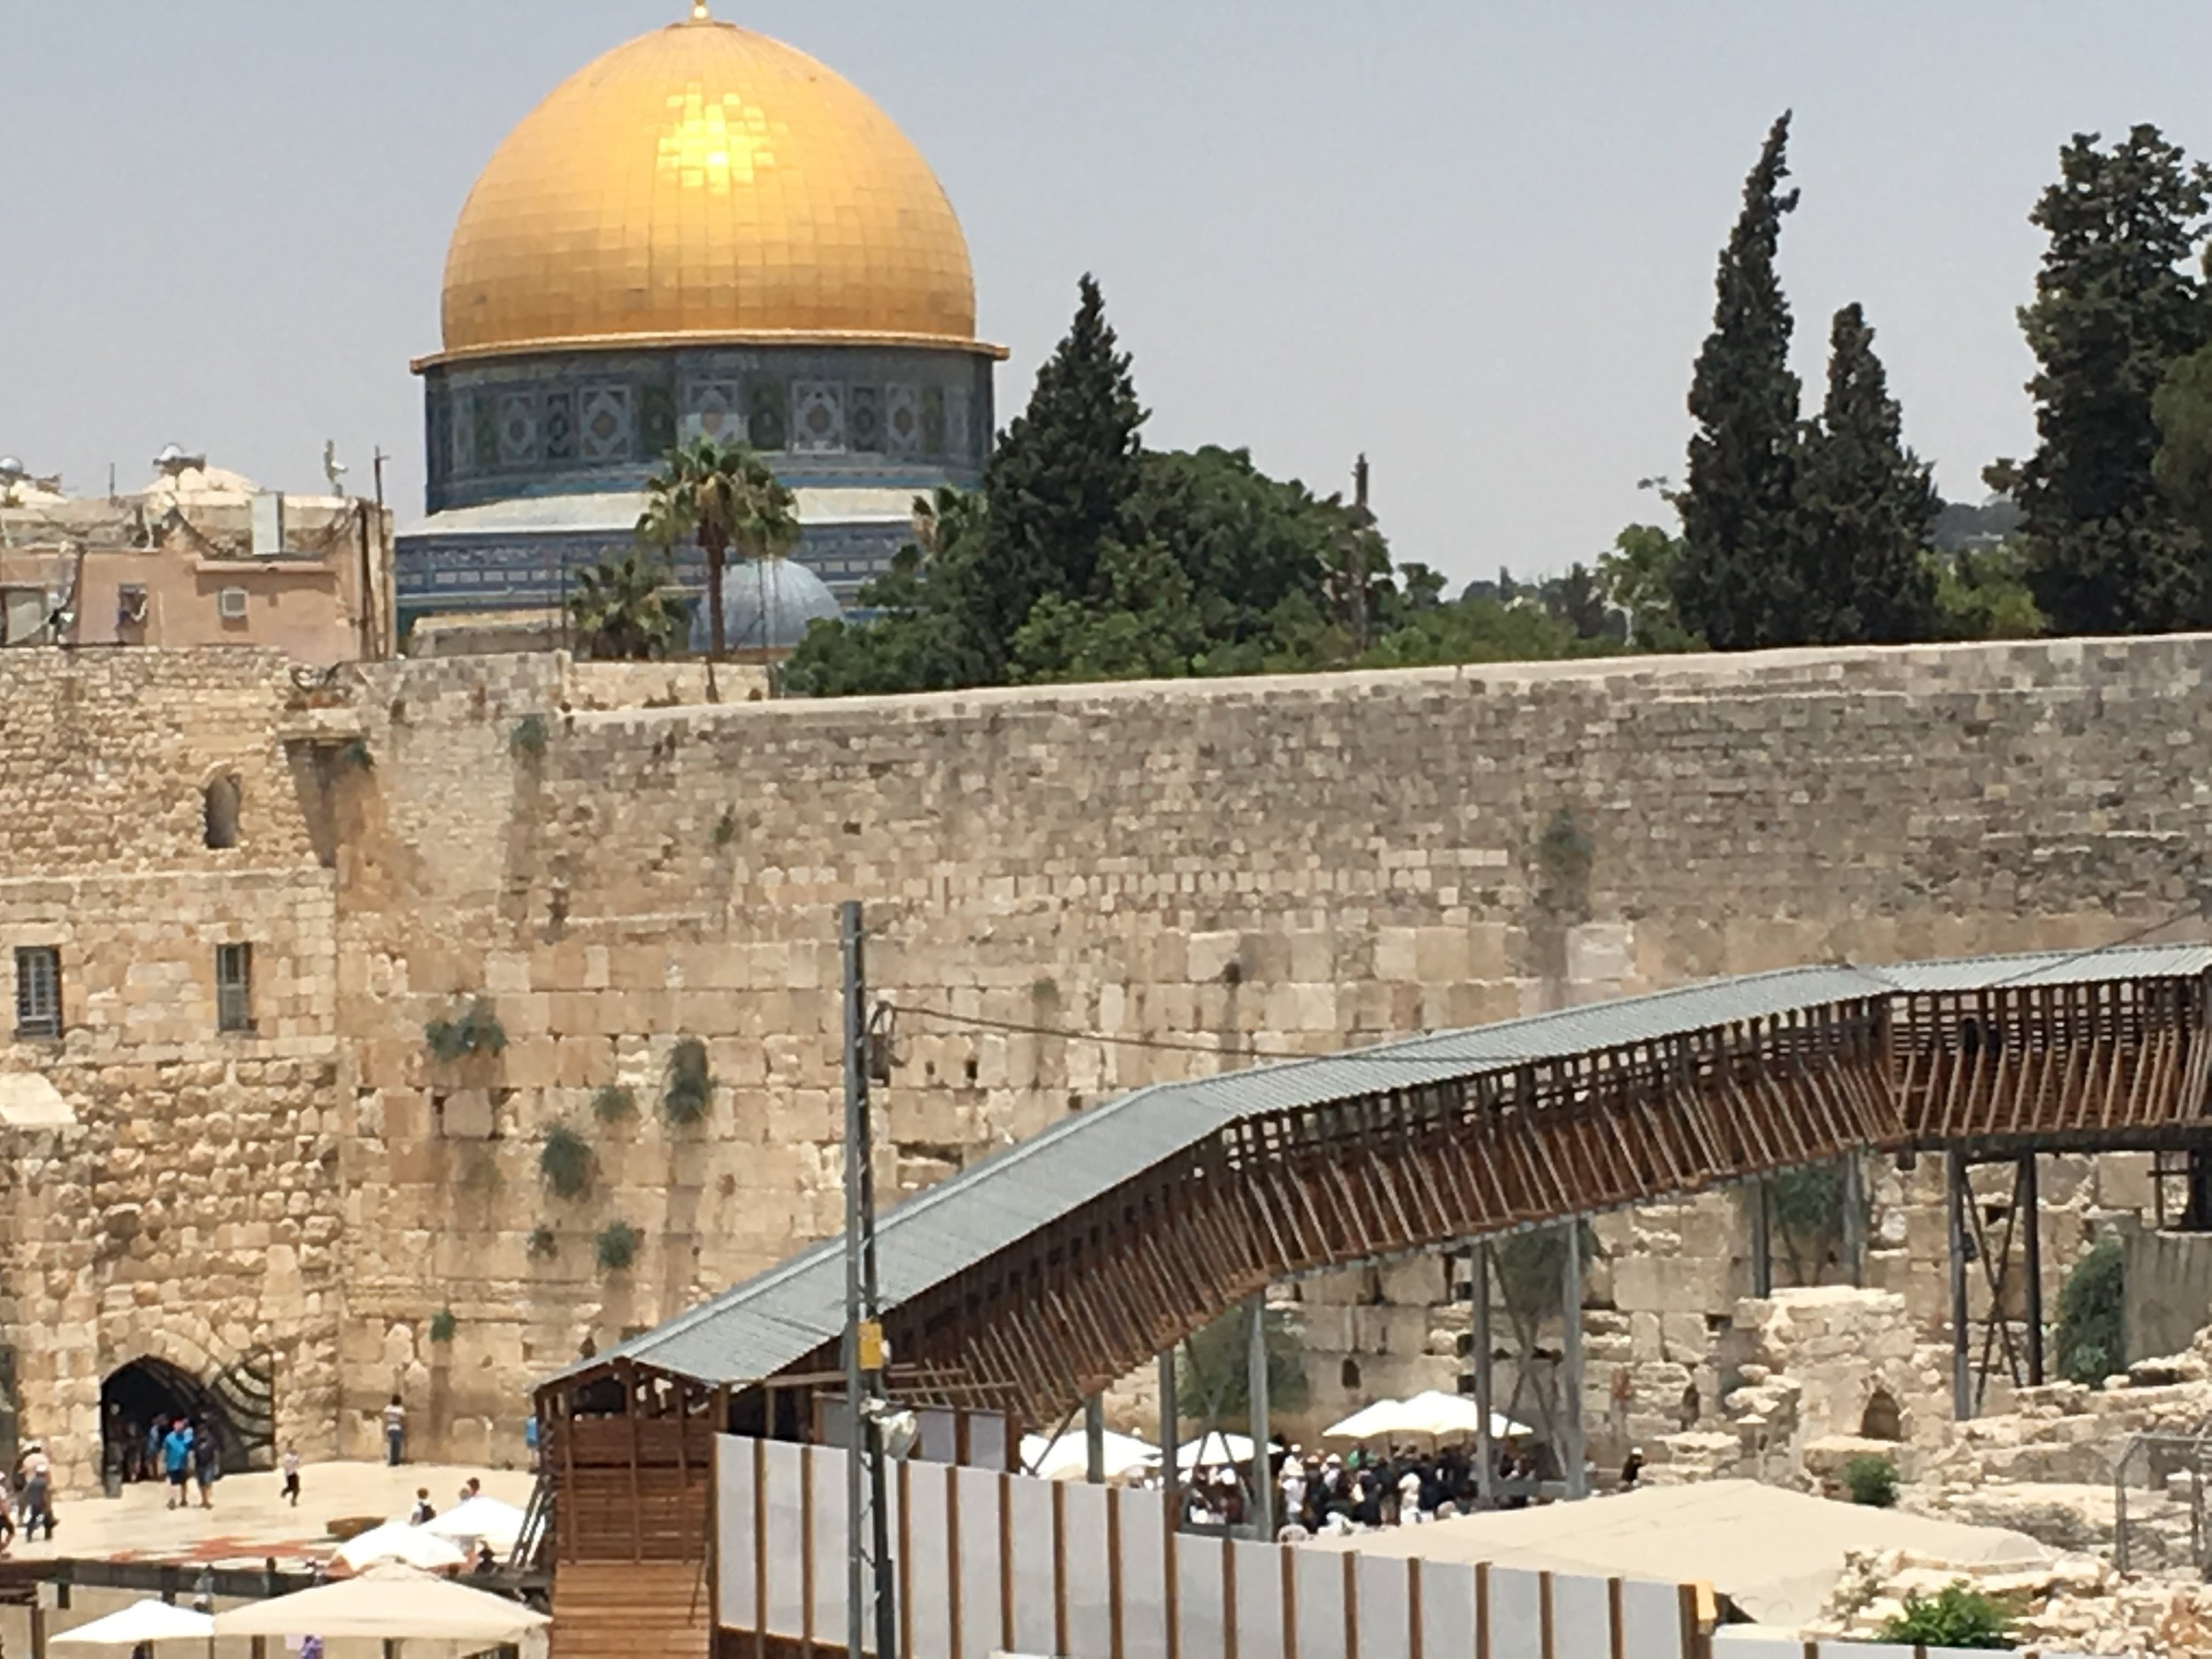 Classic shot of the Kotel and Temple Mount. [Image shows the stone wall of the Temple mount and the gold dome of the Dome of the Rock mosque]